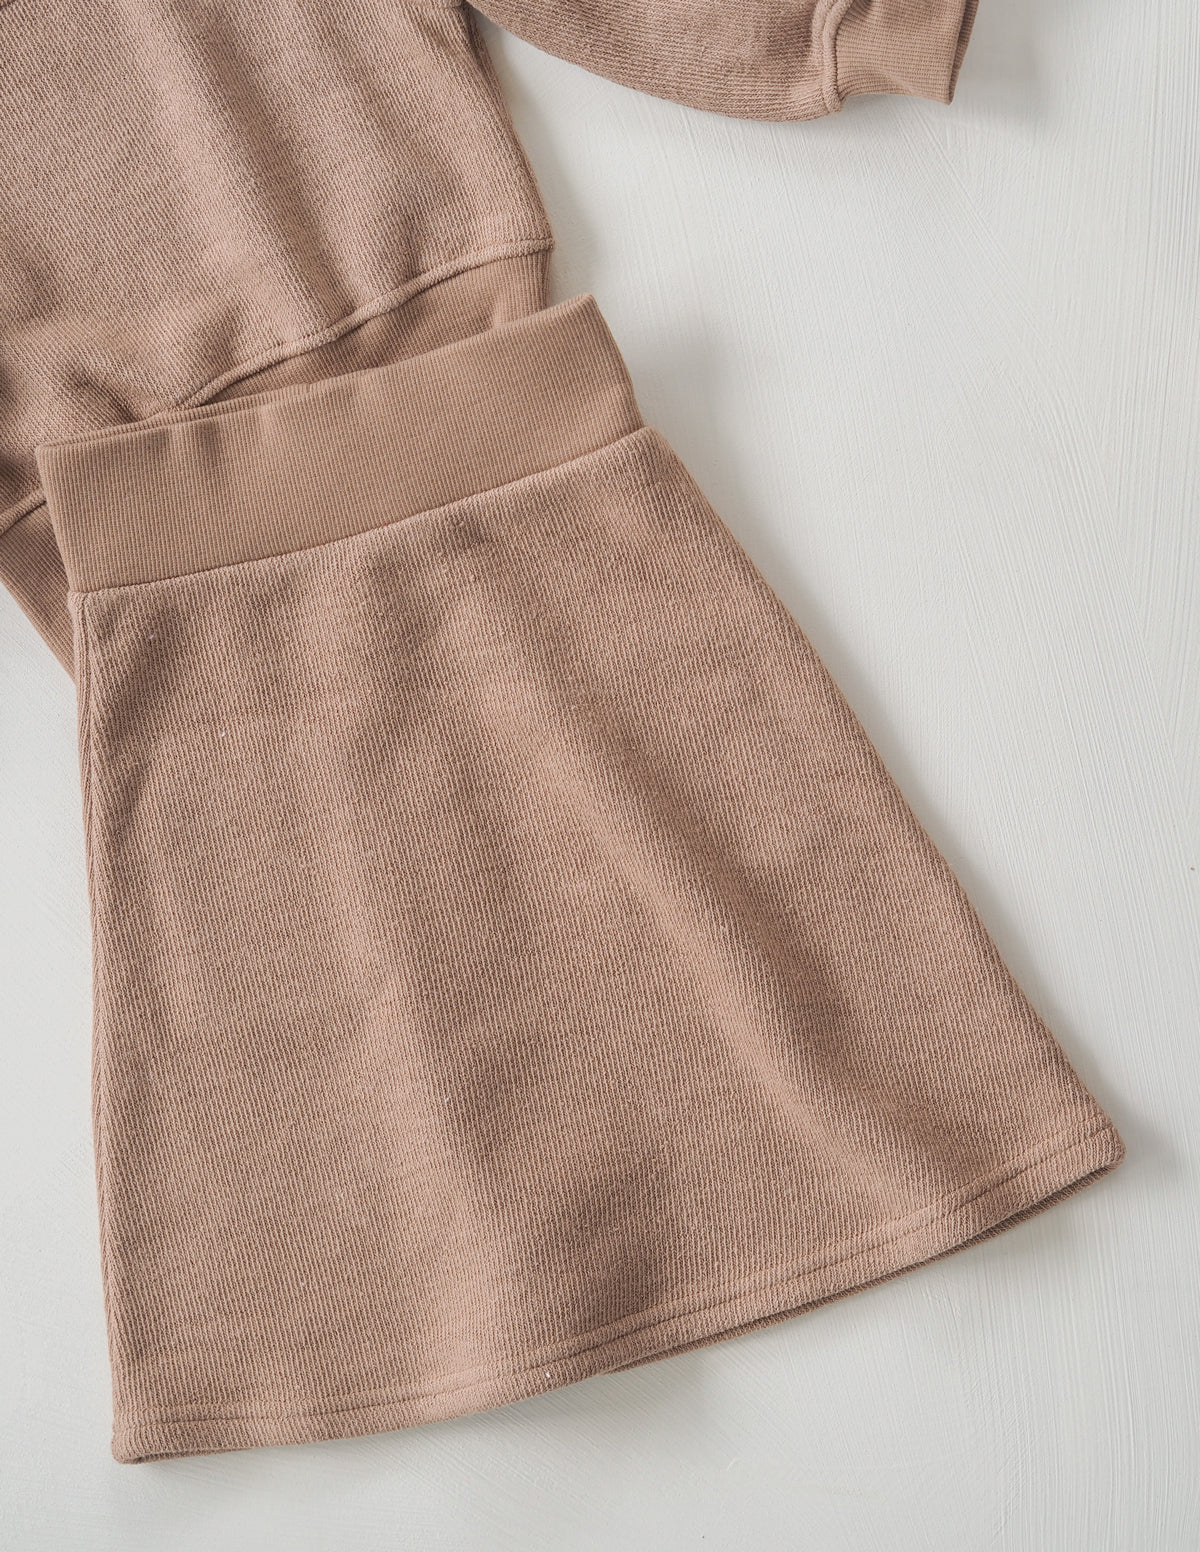 The Comfort Skirt - Husk